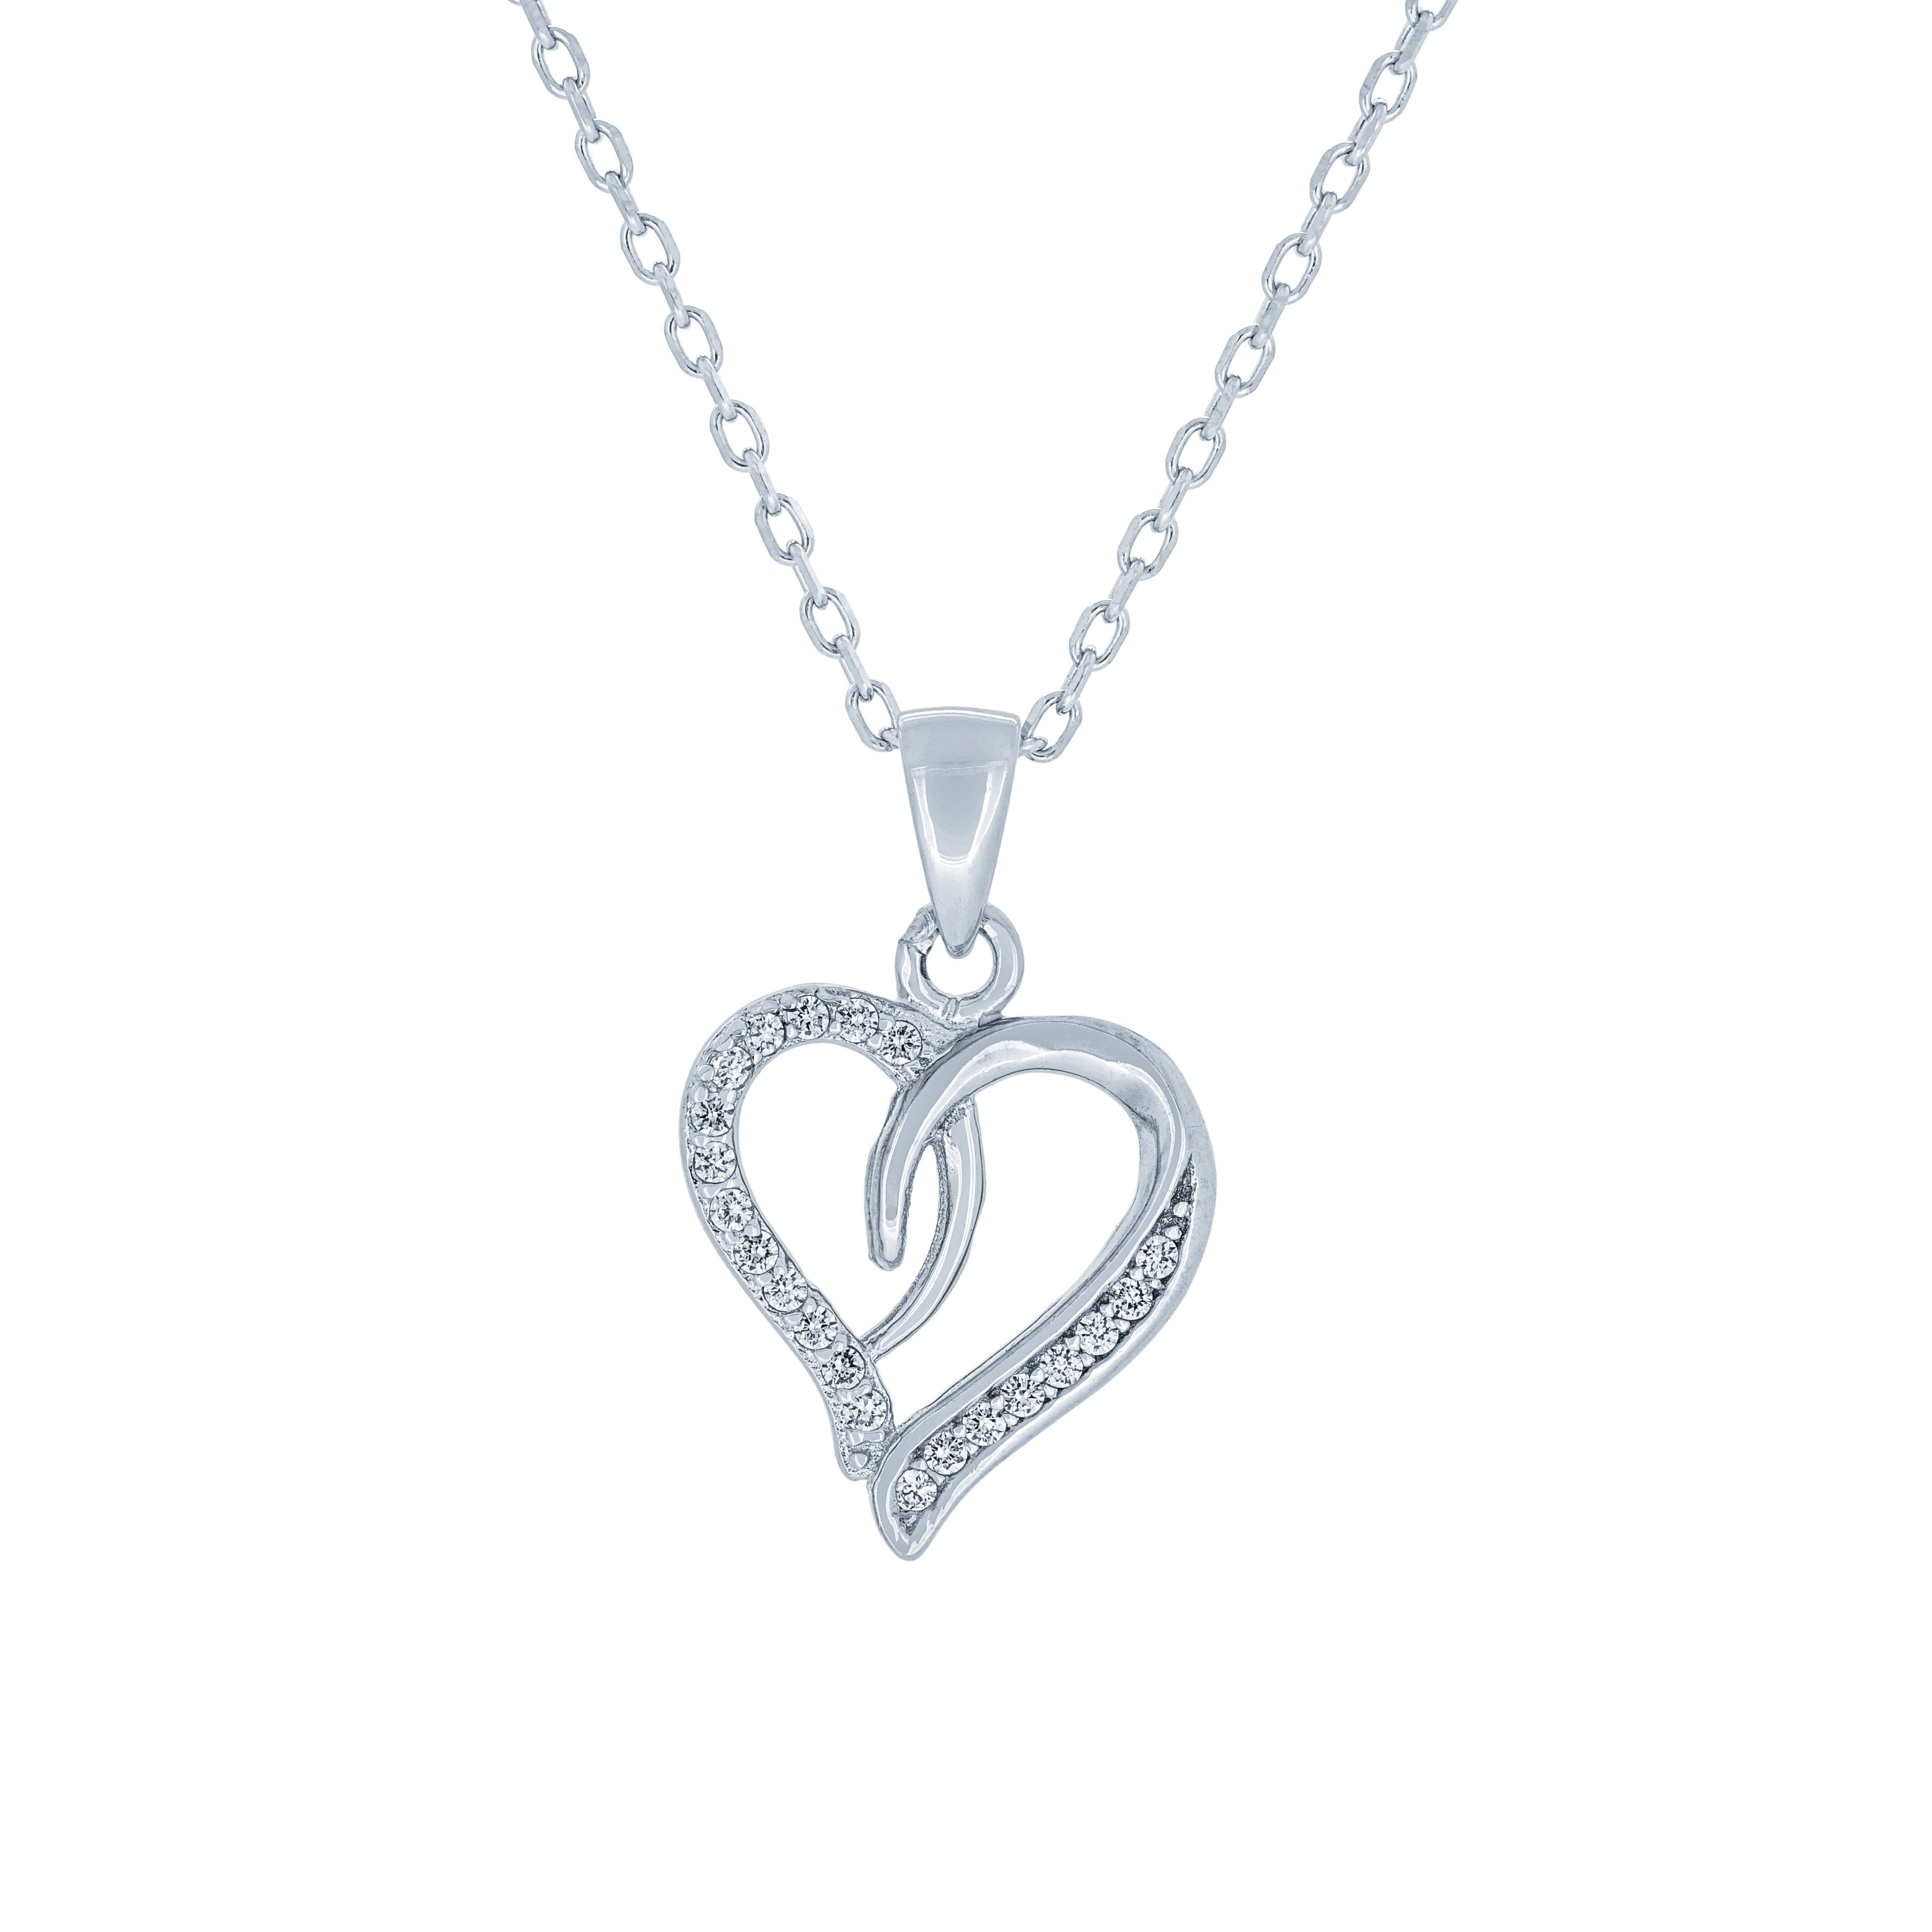 (100112A) White Cubic Zirconia Heart Pendant Necklace In Sterling Silver